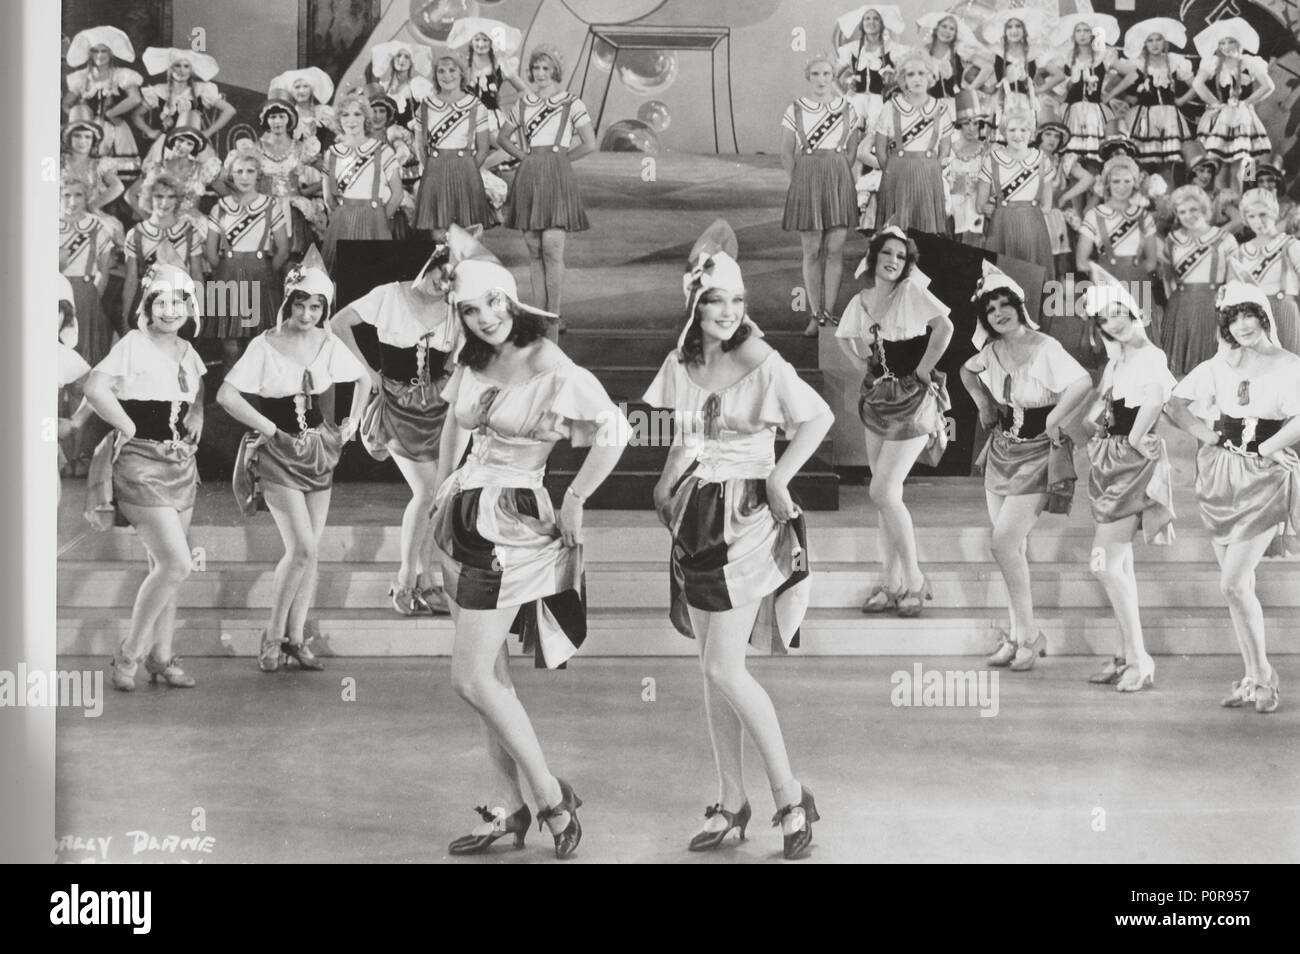 Original Film Title: THE SHOW OF SHOWS.  English Title: THE SHOW OF SHOWS.  Film Director: JOHN G. ADOLFI.  Year: 1929.  Stars: LORETTA YOUNG; SALLY BLANE. Credit: WARNER BROTHERS / Album - Stock Image